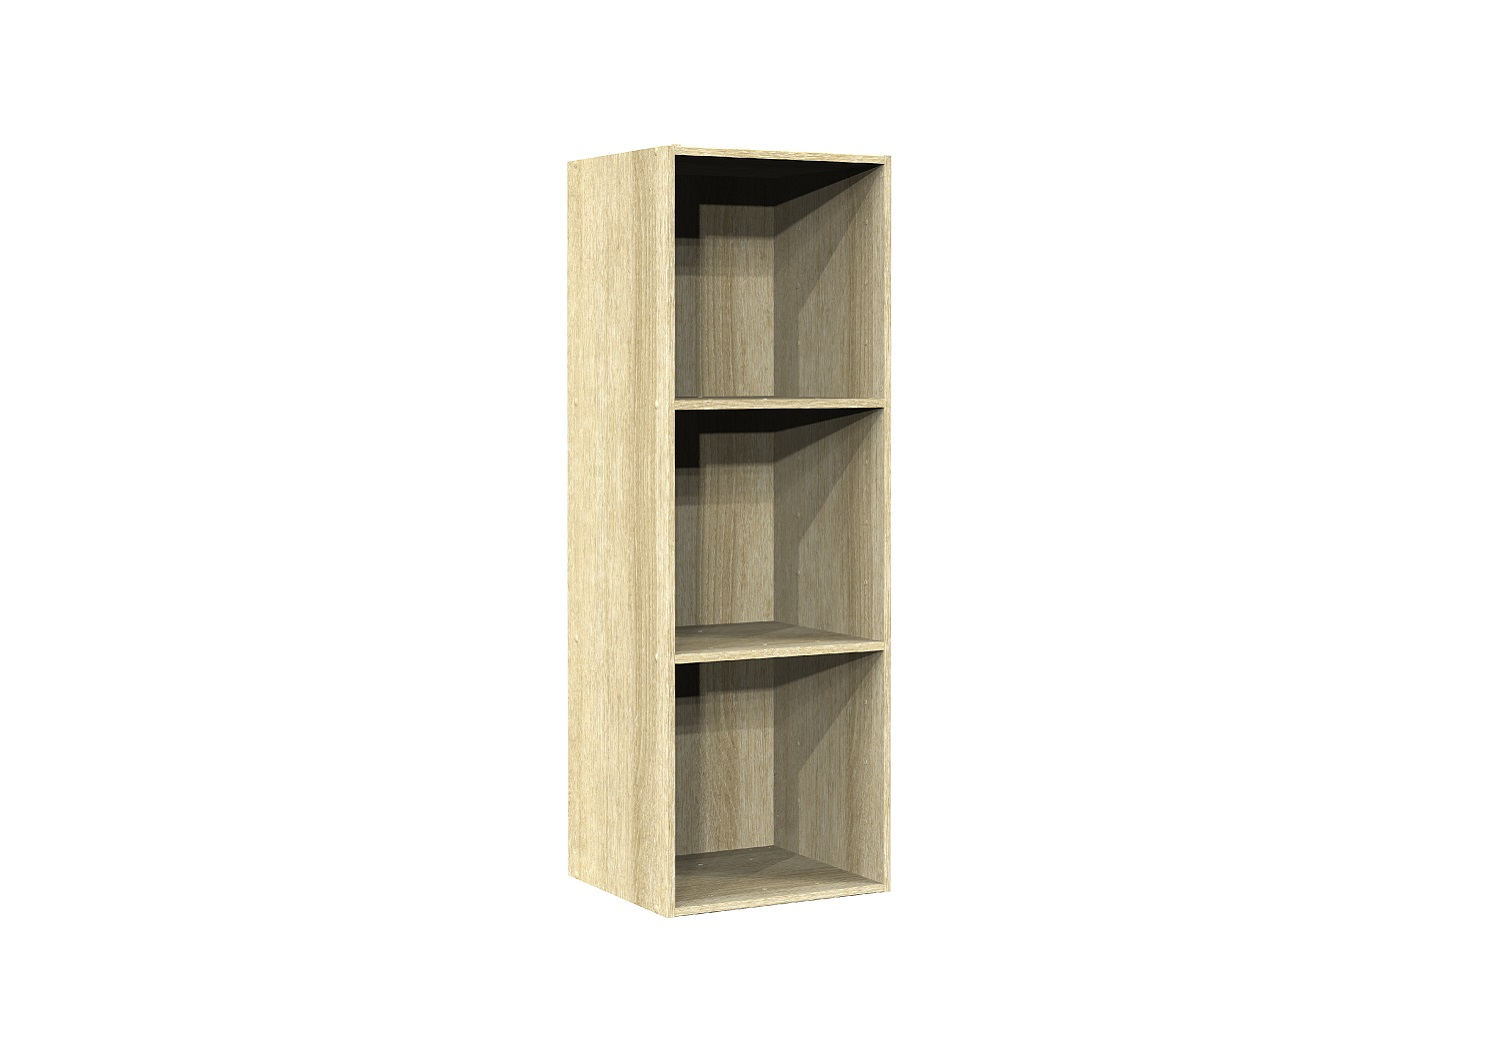 Bilrich Storage Furniture - Multi Kaz 3x1 Cube Oak